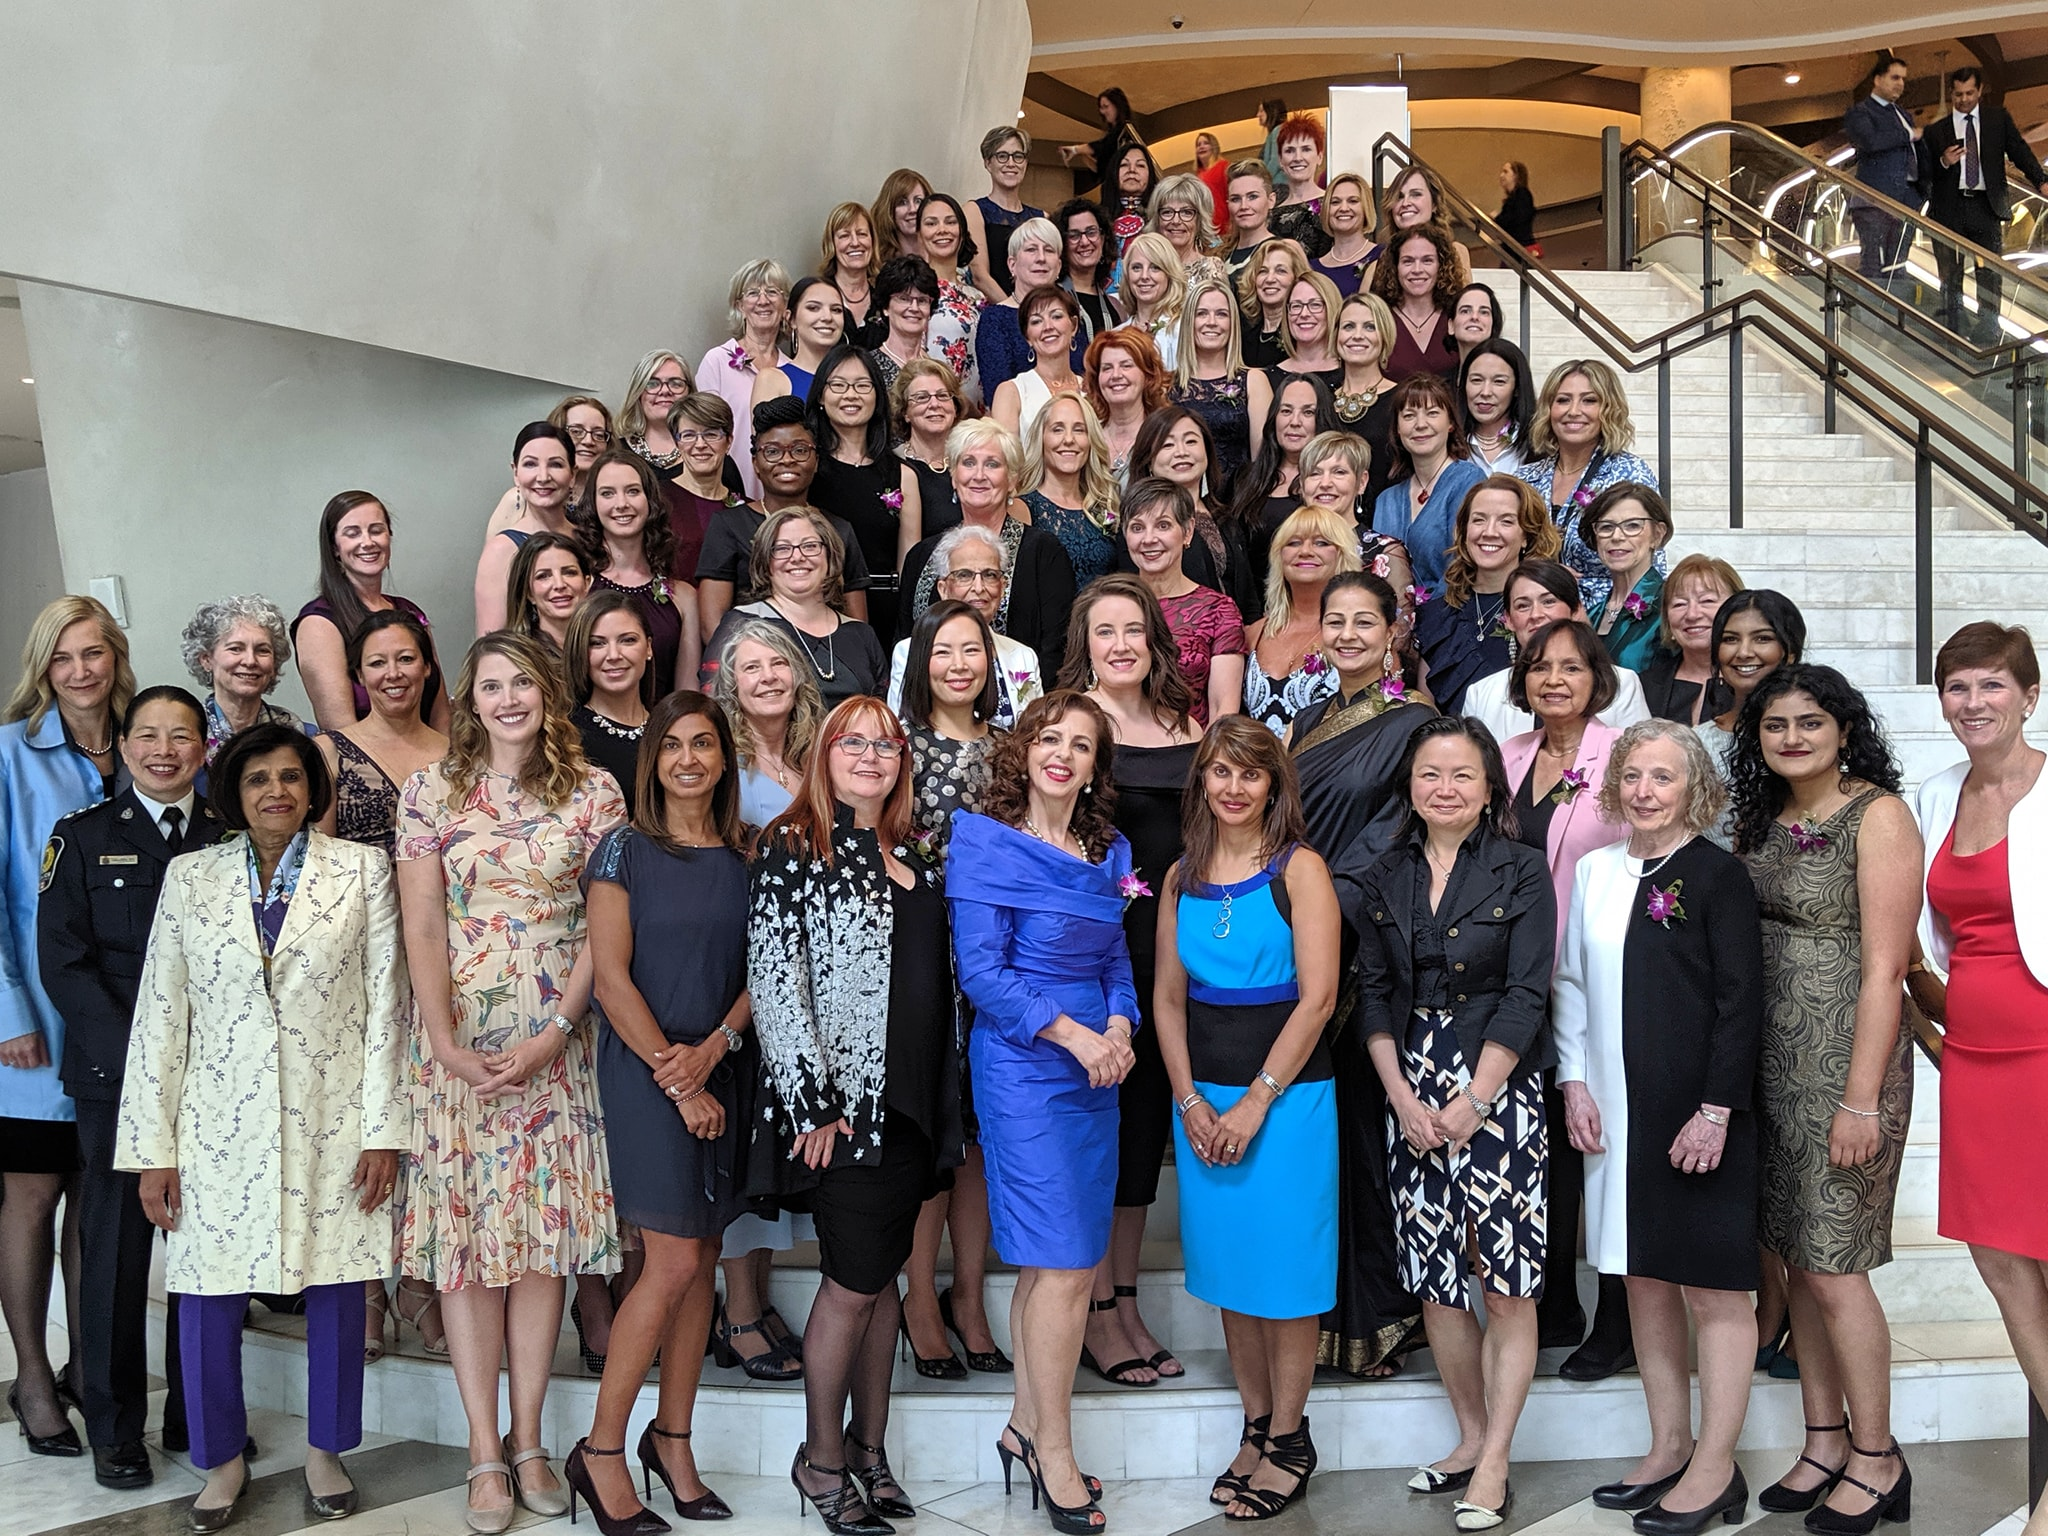 YWCA Women of Distinction Awards - Honouring accomplished women leaders in our community - 2019